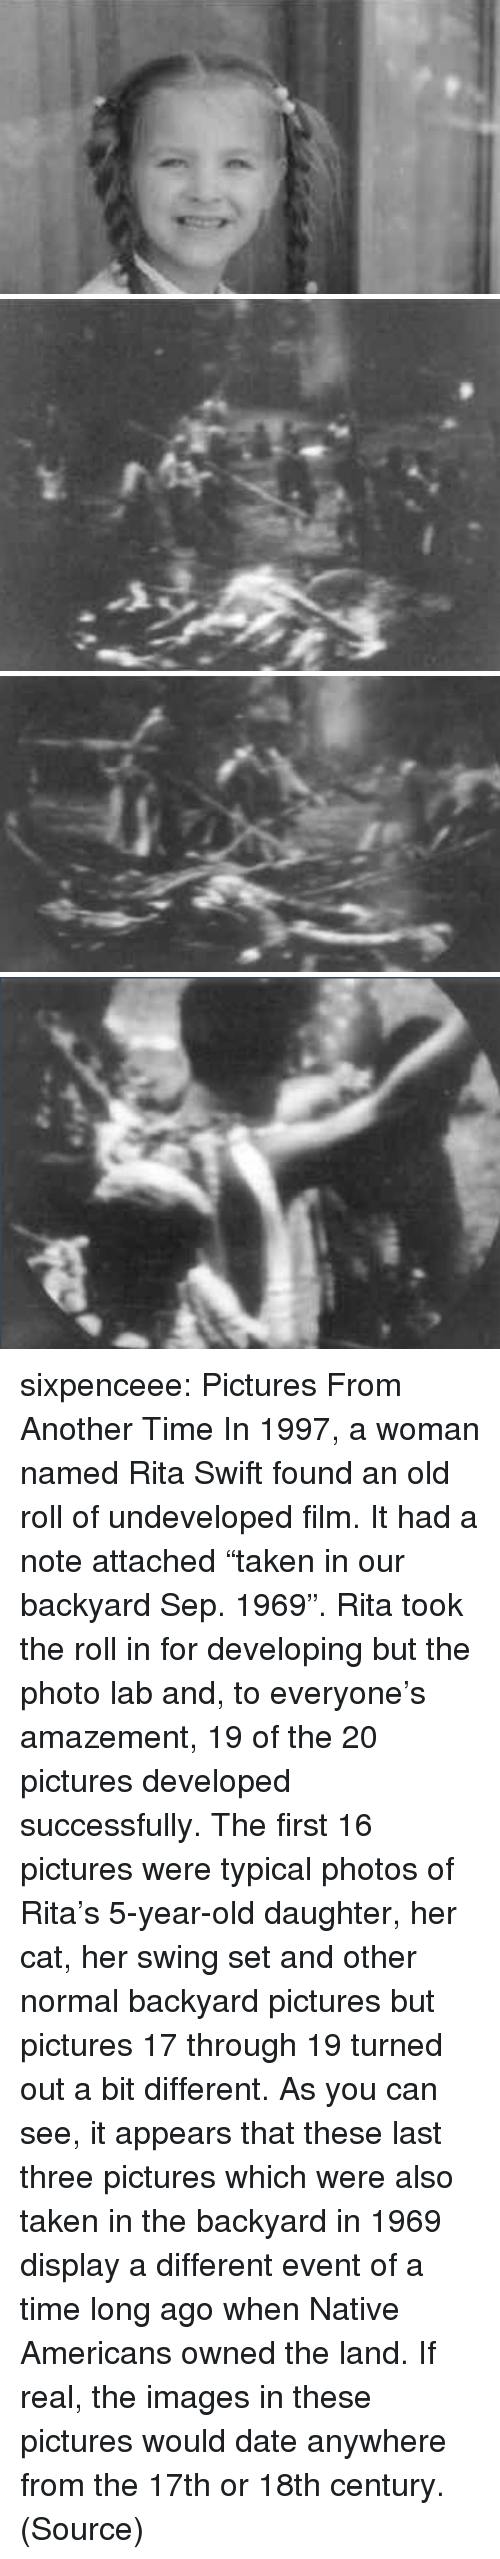 """Taken, Tumblr, and Blog: sixpenceee: Pictures From Another Time In 1997, a woman named Rita Swift found an old roll of undeveloped film. It had a note attached """"taken in our backyard Sep. 1969"""". Rita took the roll in for developing but the photo lab and, to everyone's amazement, 19 of the 20 pictures developed successfully. The first 16 pictures were typical photos of Rita's 5-year-old daughter, her cat, her swing set and other normal backyard pictures but pictures 17 through 19 turned out a bit different. As you can see, it appears that these last three pictures which were also taken in the backyard in 1969 display a different event of a time long ago when Native Americans owned the land. If real, the images in these pictures would date anywhere from the 17th or 18th century. (Source)"""